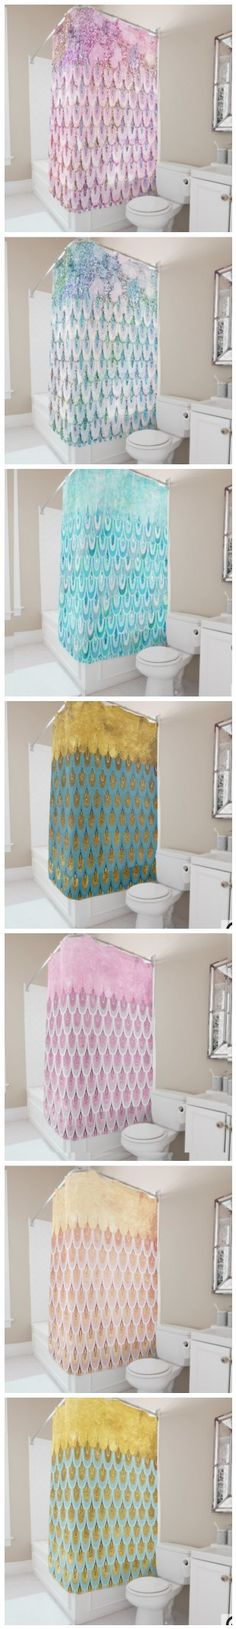 Shiny Glitter Mermaid Fish Scales Shower Curtains by #UtART #Zazzle Beautiful shining feminine and elegant mermaid glitter scales in different shades of pink or blue and metal gold foil. This design is the perfect gift for her for the stylish lady, perfect for her birthday, sweet sixteen favor, bridal shower, perfect summer gift for her, the girly girly and modern fashionista or any occasion! Please note, none of the elements are glitter, bling or shiny, this is only a printed image